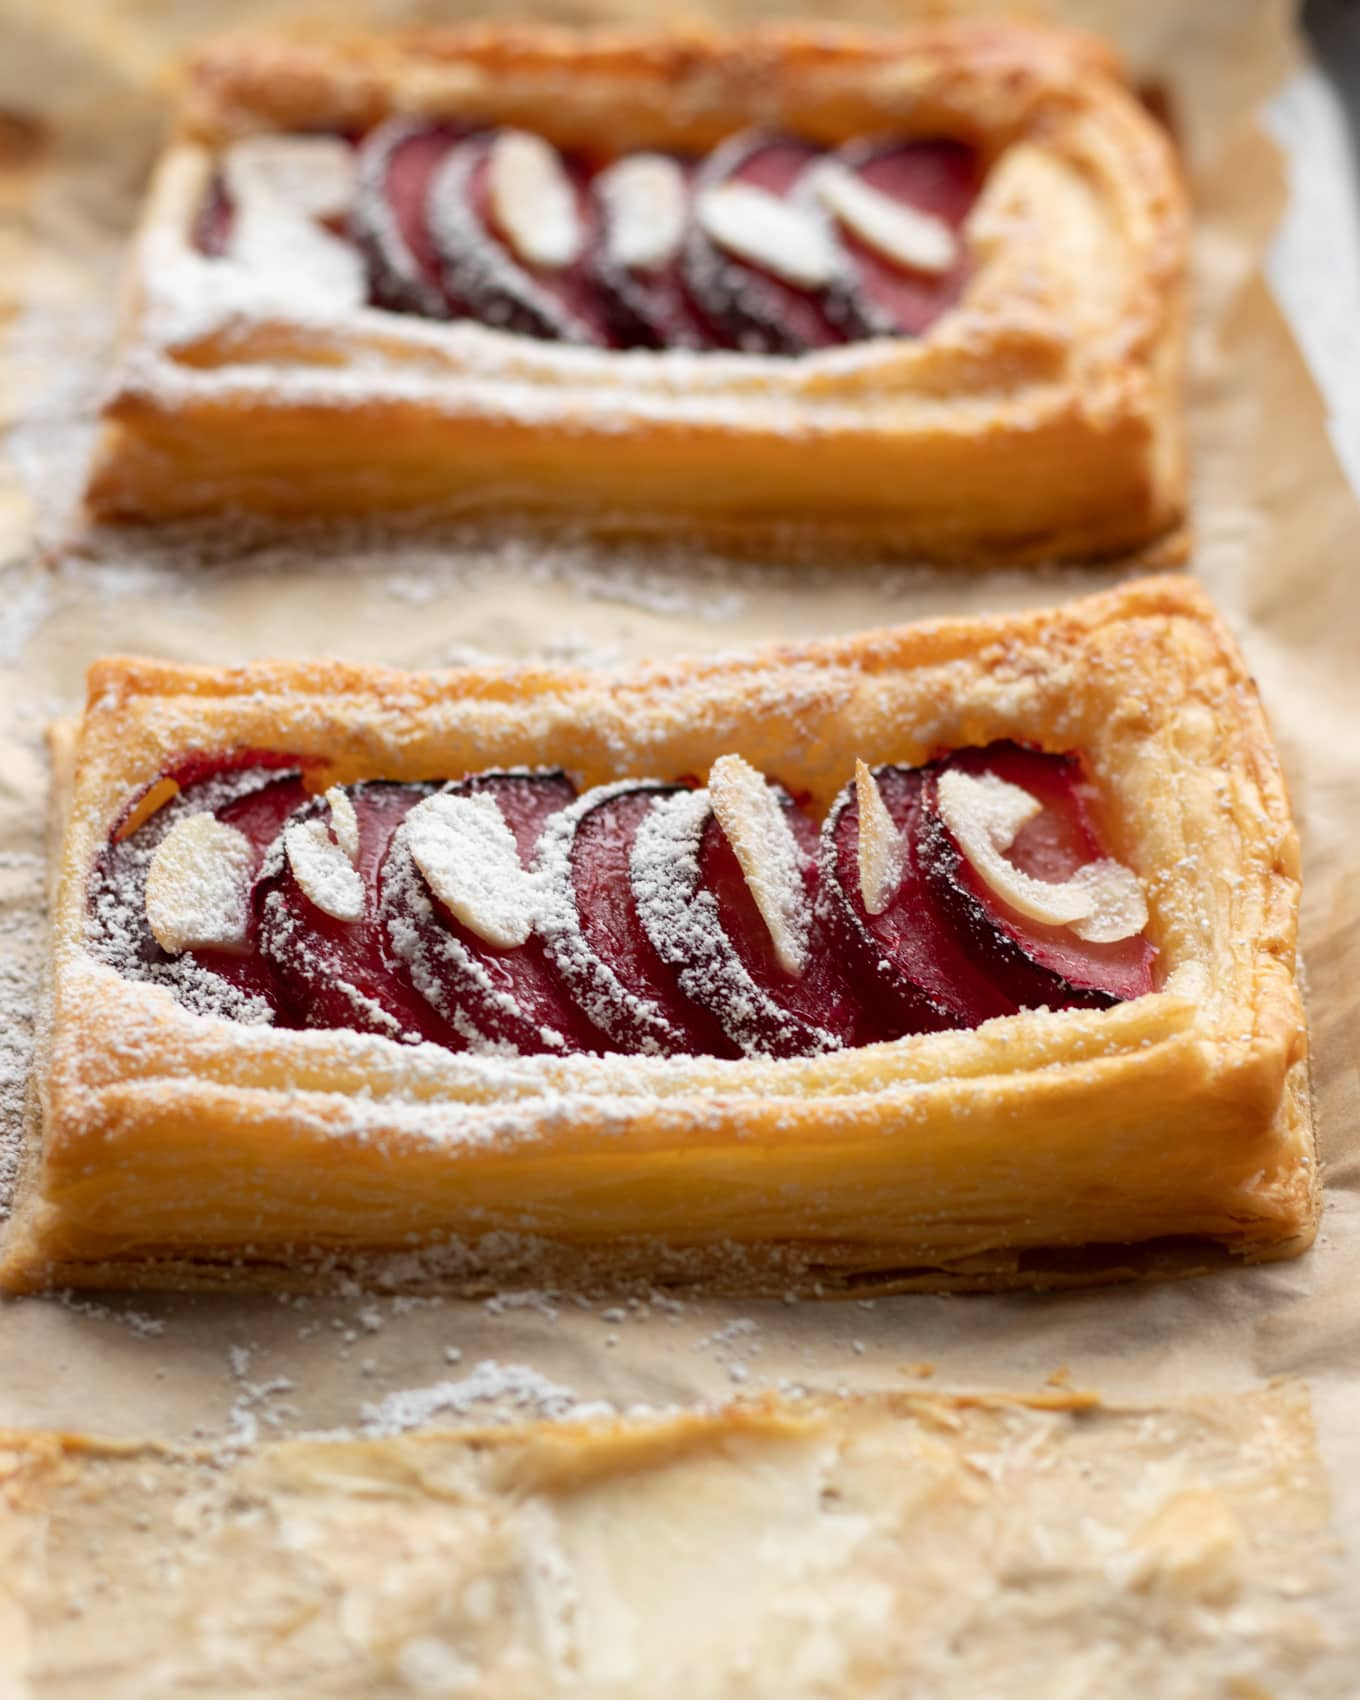 Plum tarts with slices almond and a dust of icing sugar